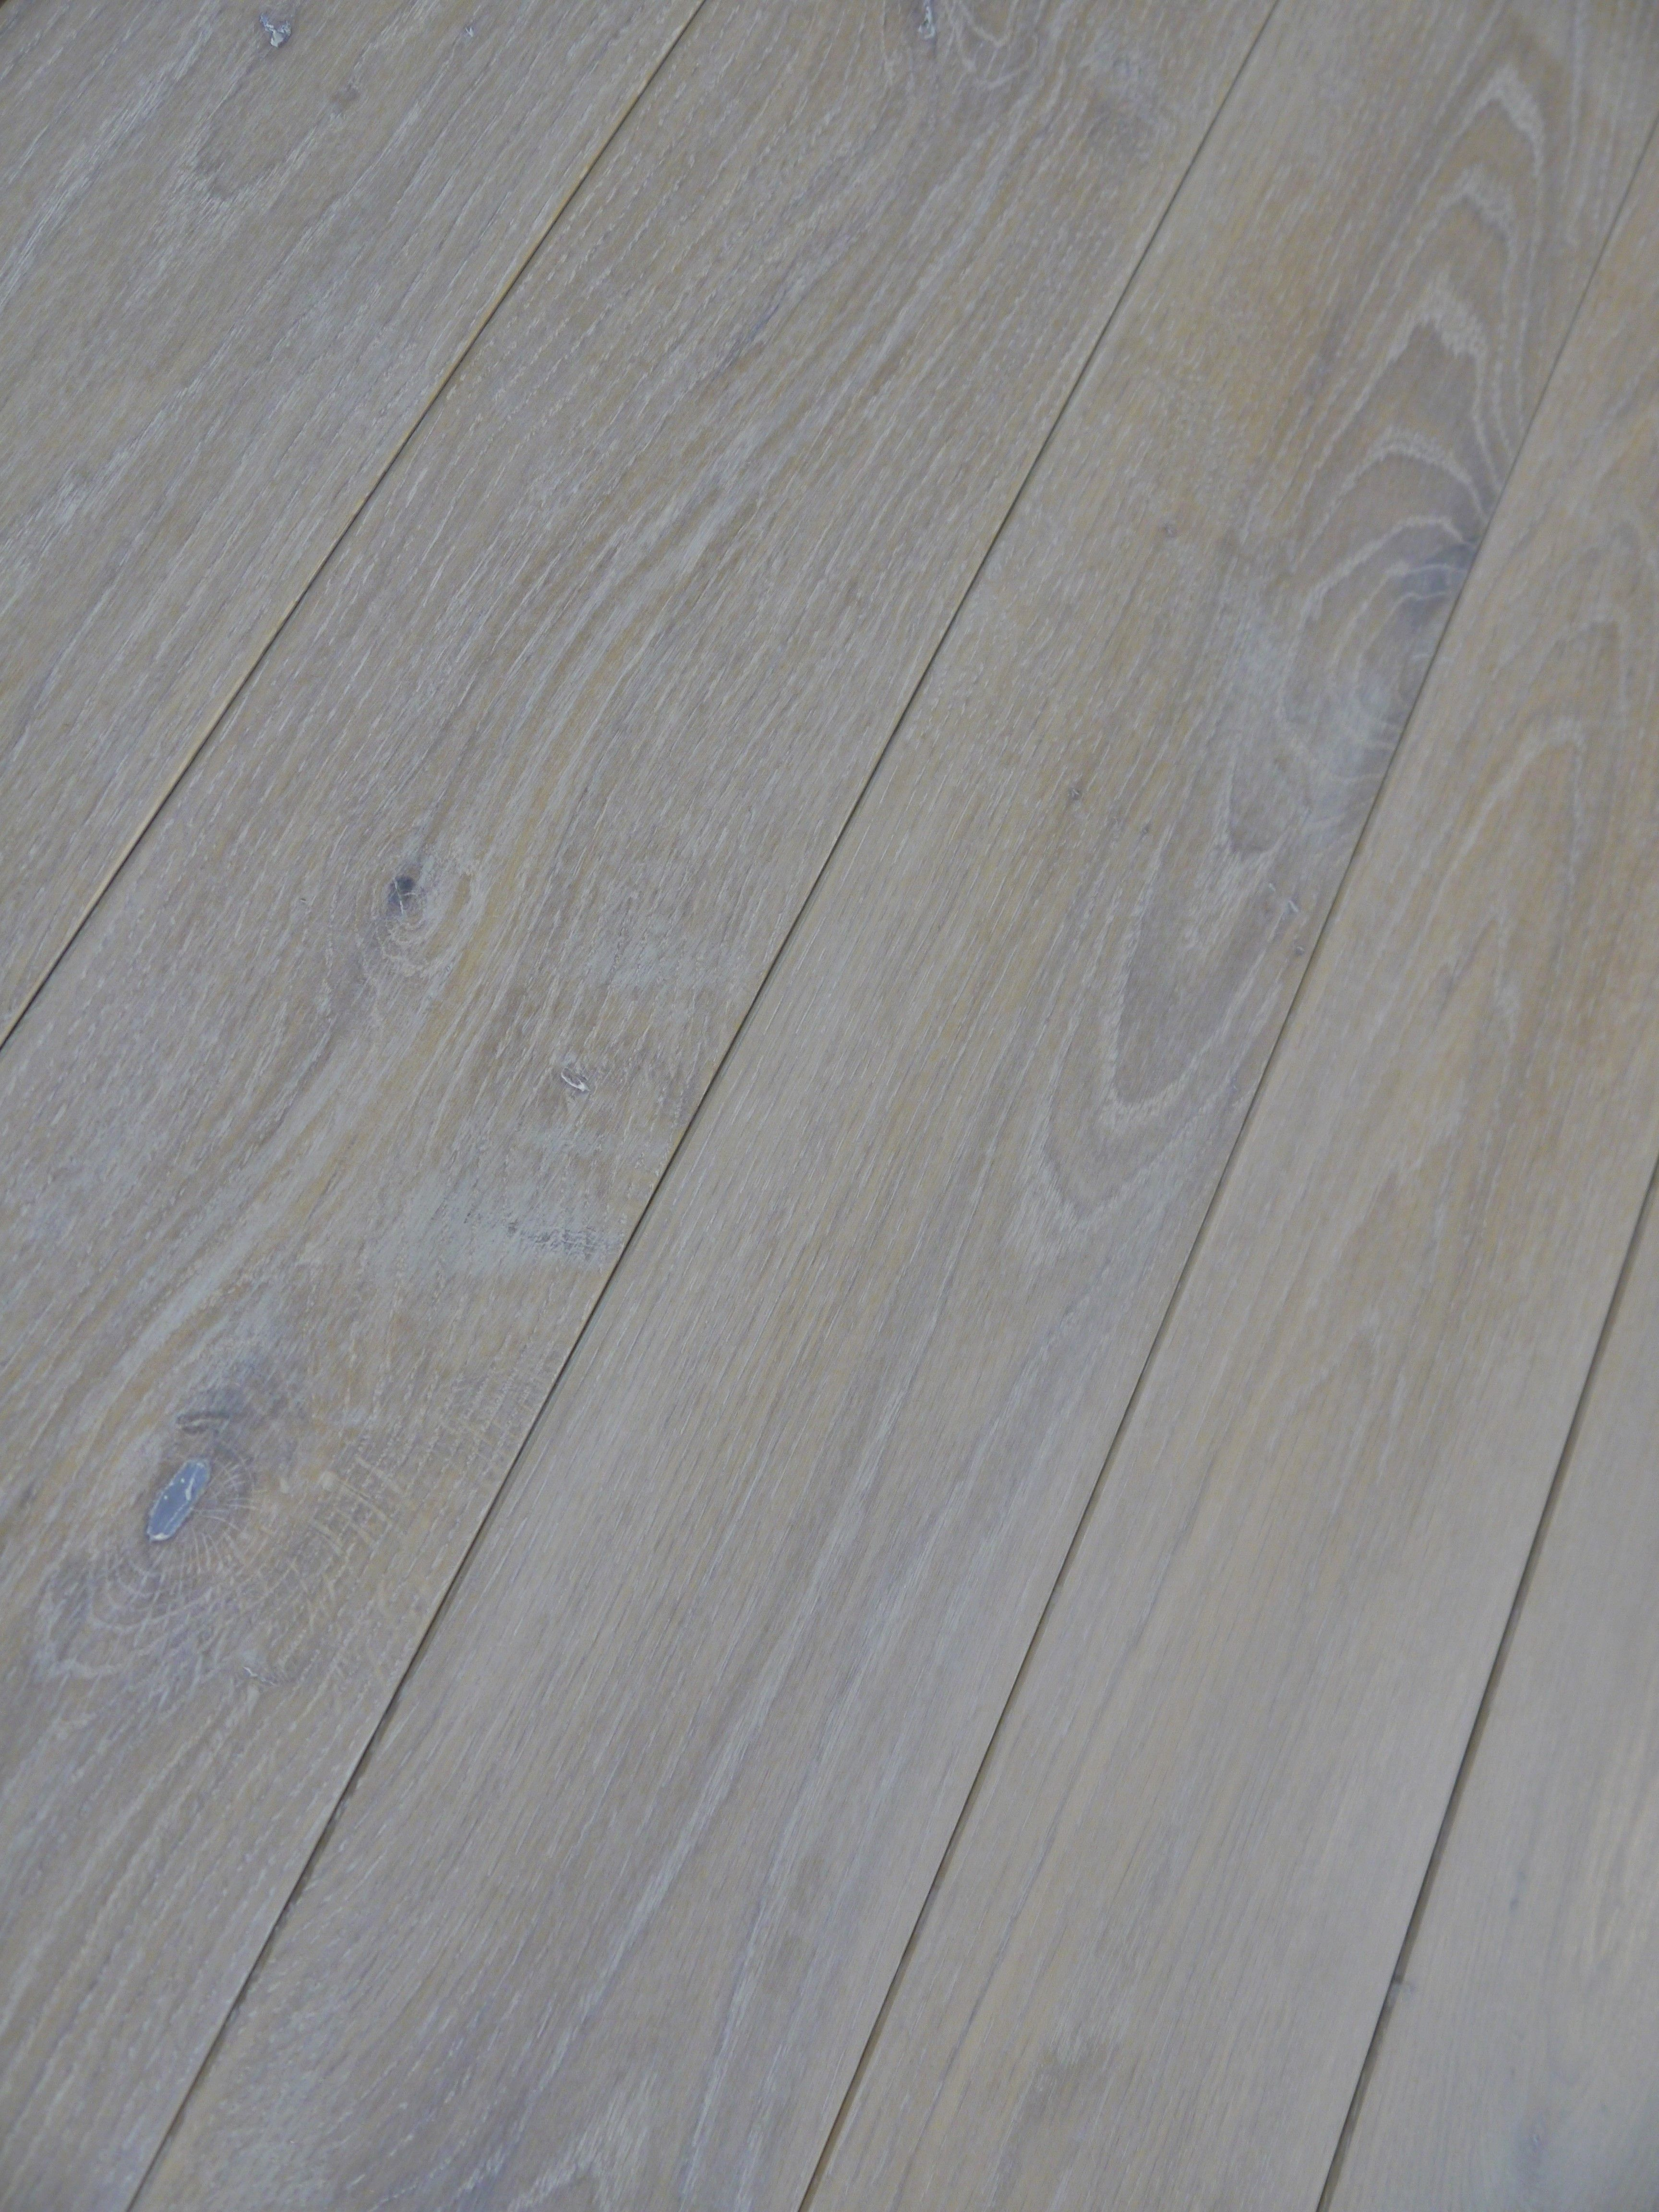 classic wide plank white oak flooring with a super